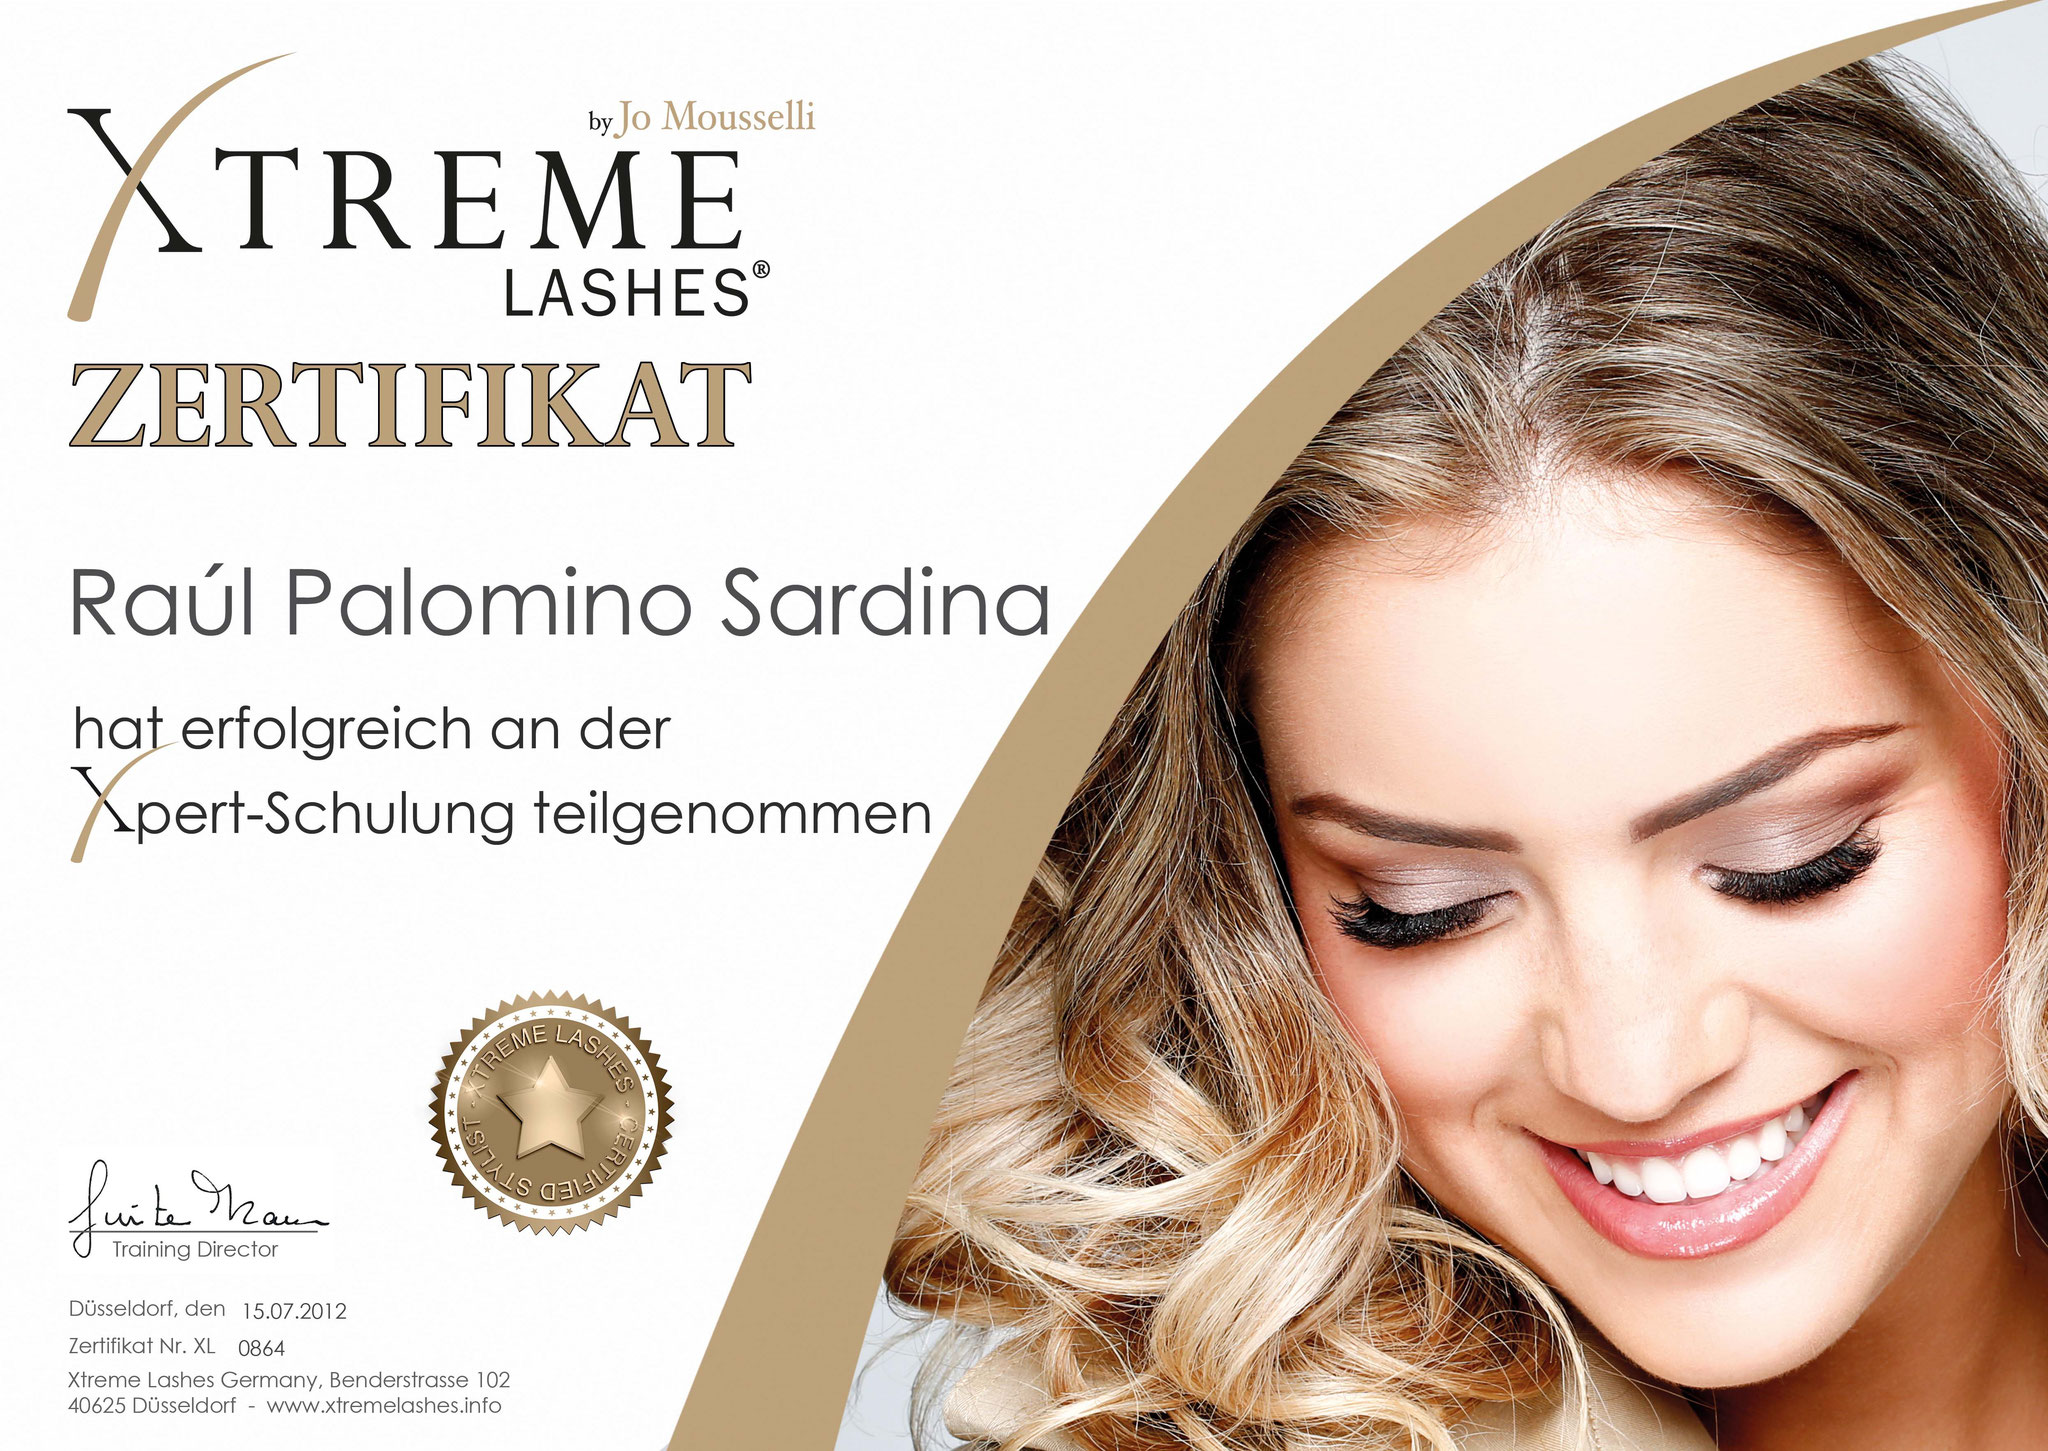 Xtreme Lashes® Zertifikat Xpert-Schulung